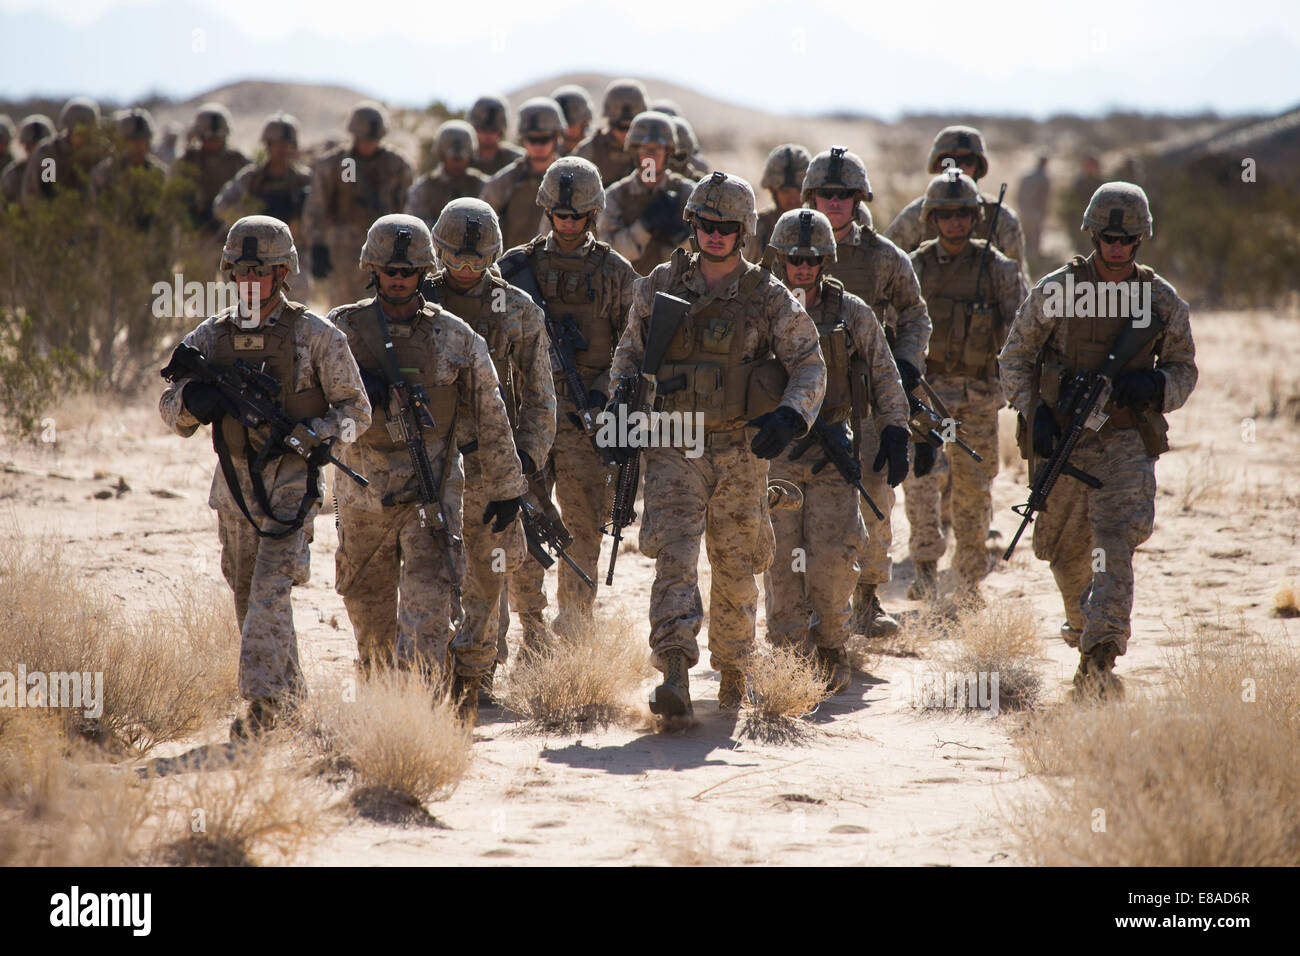 U.S. Marines with 3rd Battalion, 3rd Marine Regiment, 3rd Marine Division, 3rd Marine Expeditionary Force participate Stock Photo